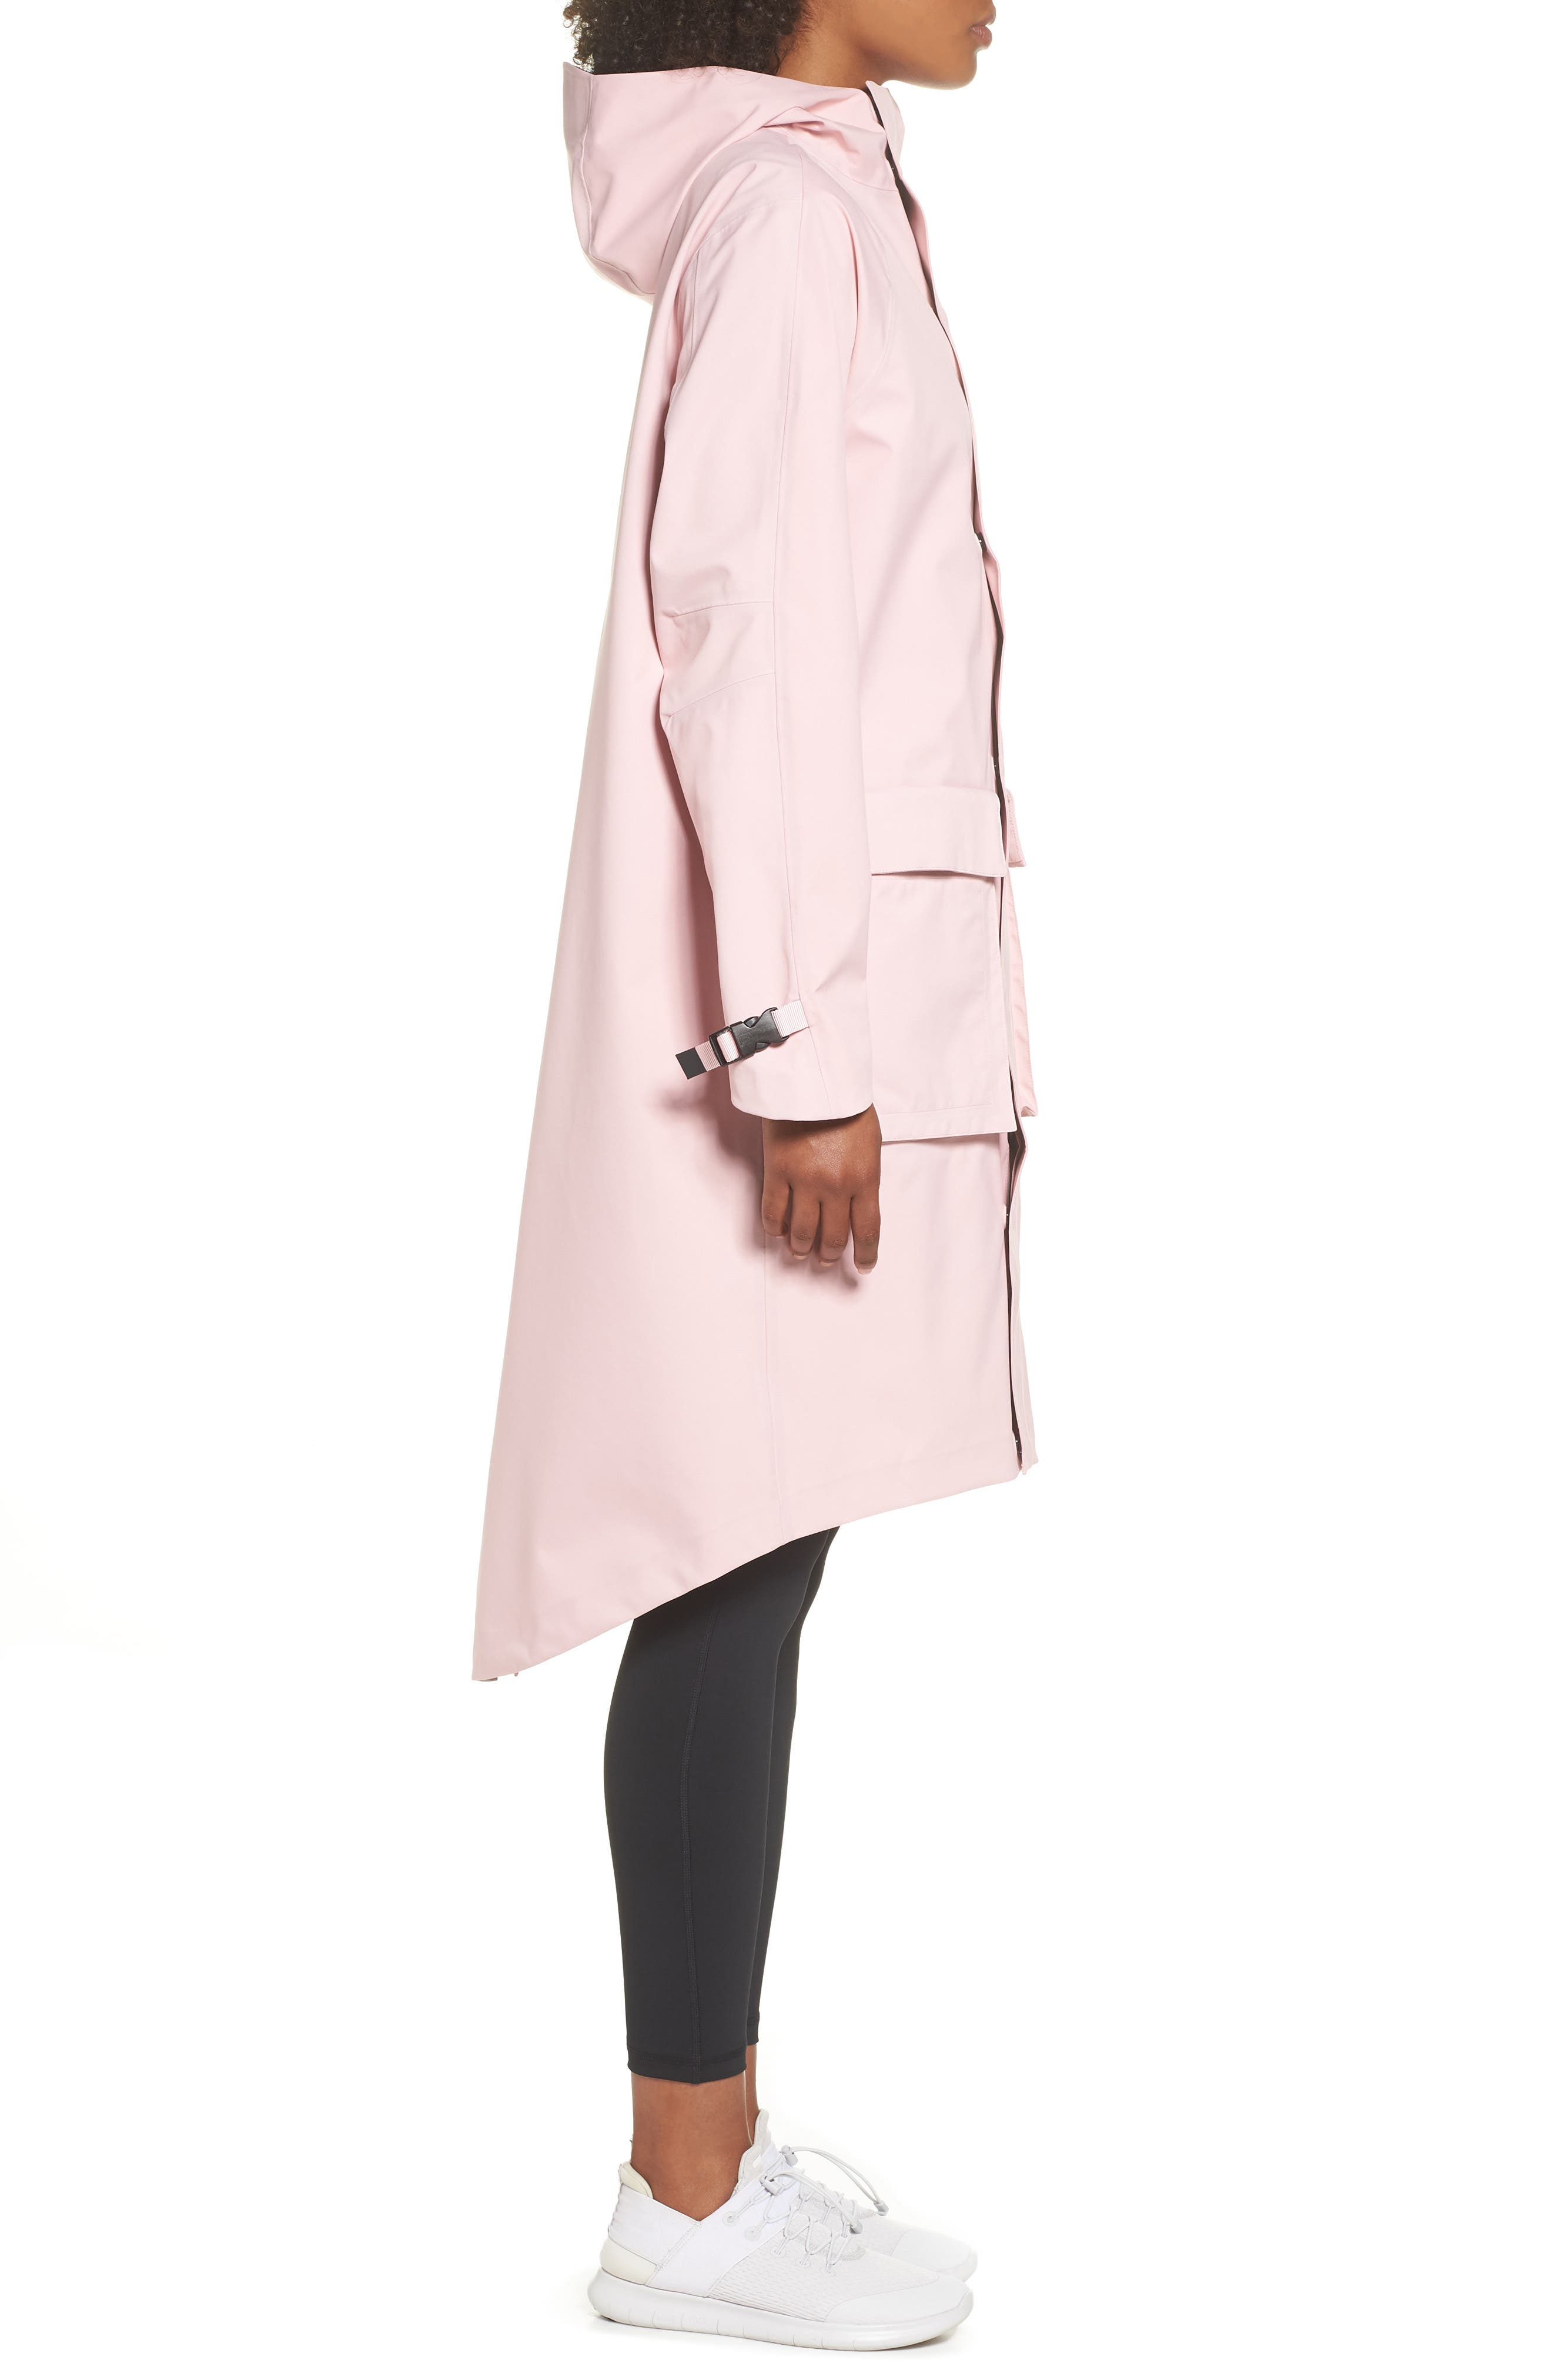 NRG Women's Hooded Anorak,                             Alternate thumbnail 3, color,                             Arctic Punch/ Arctic Punch